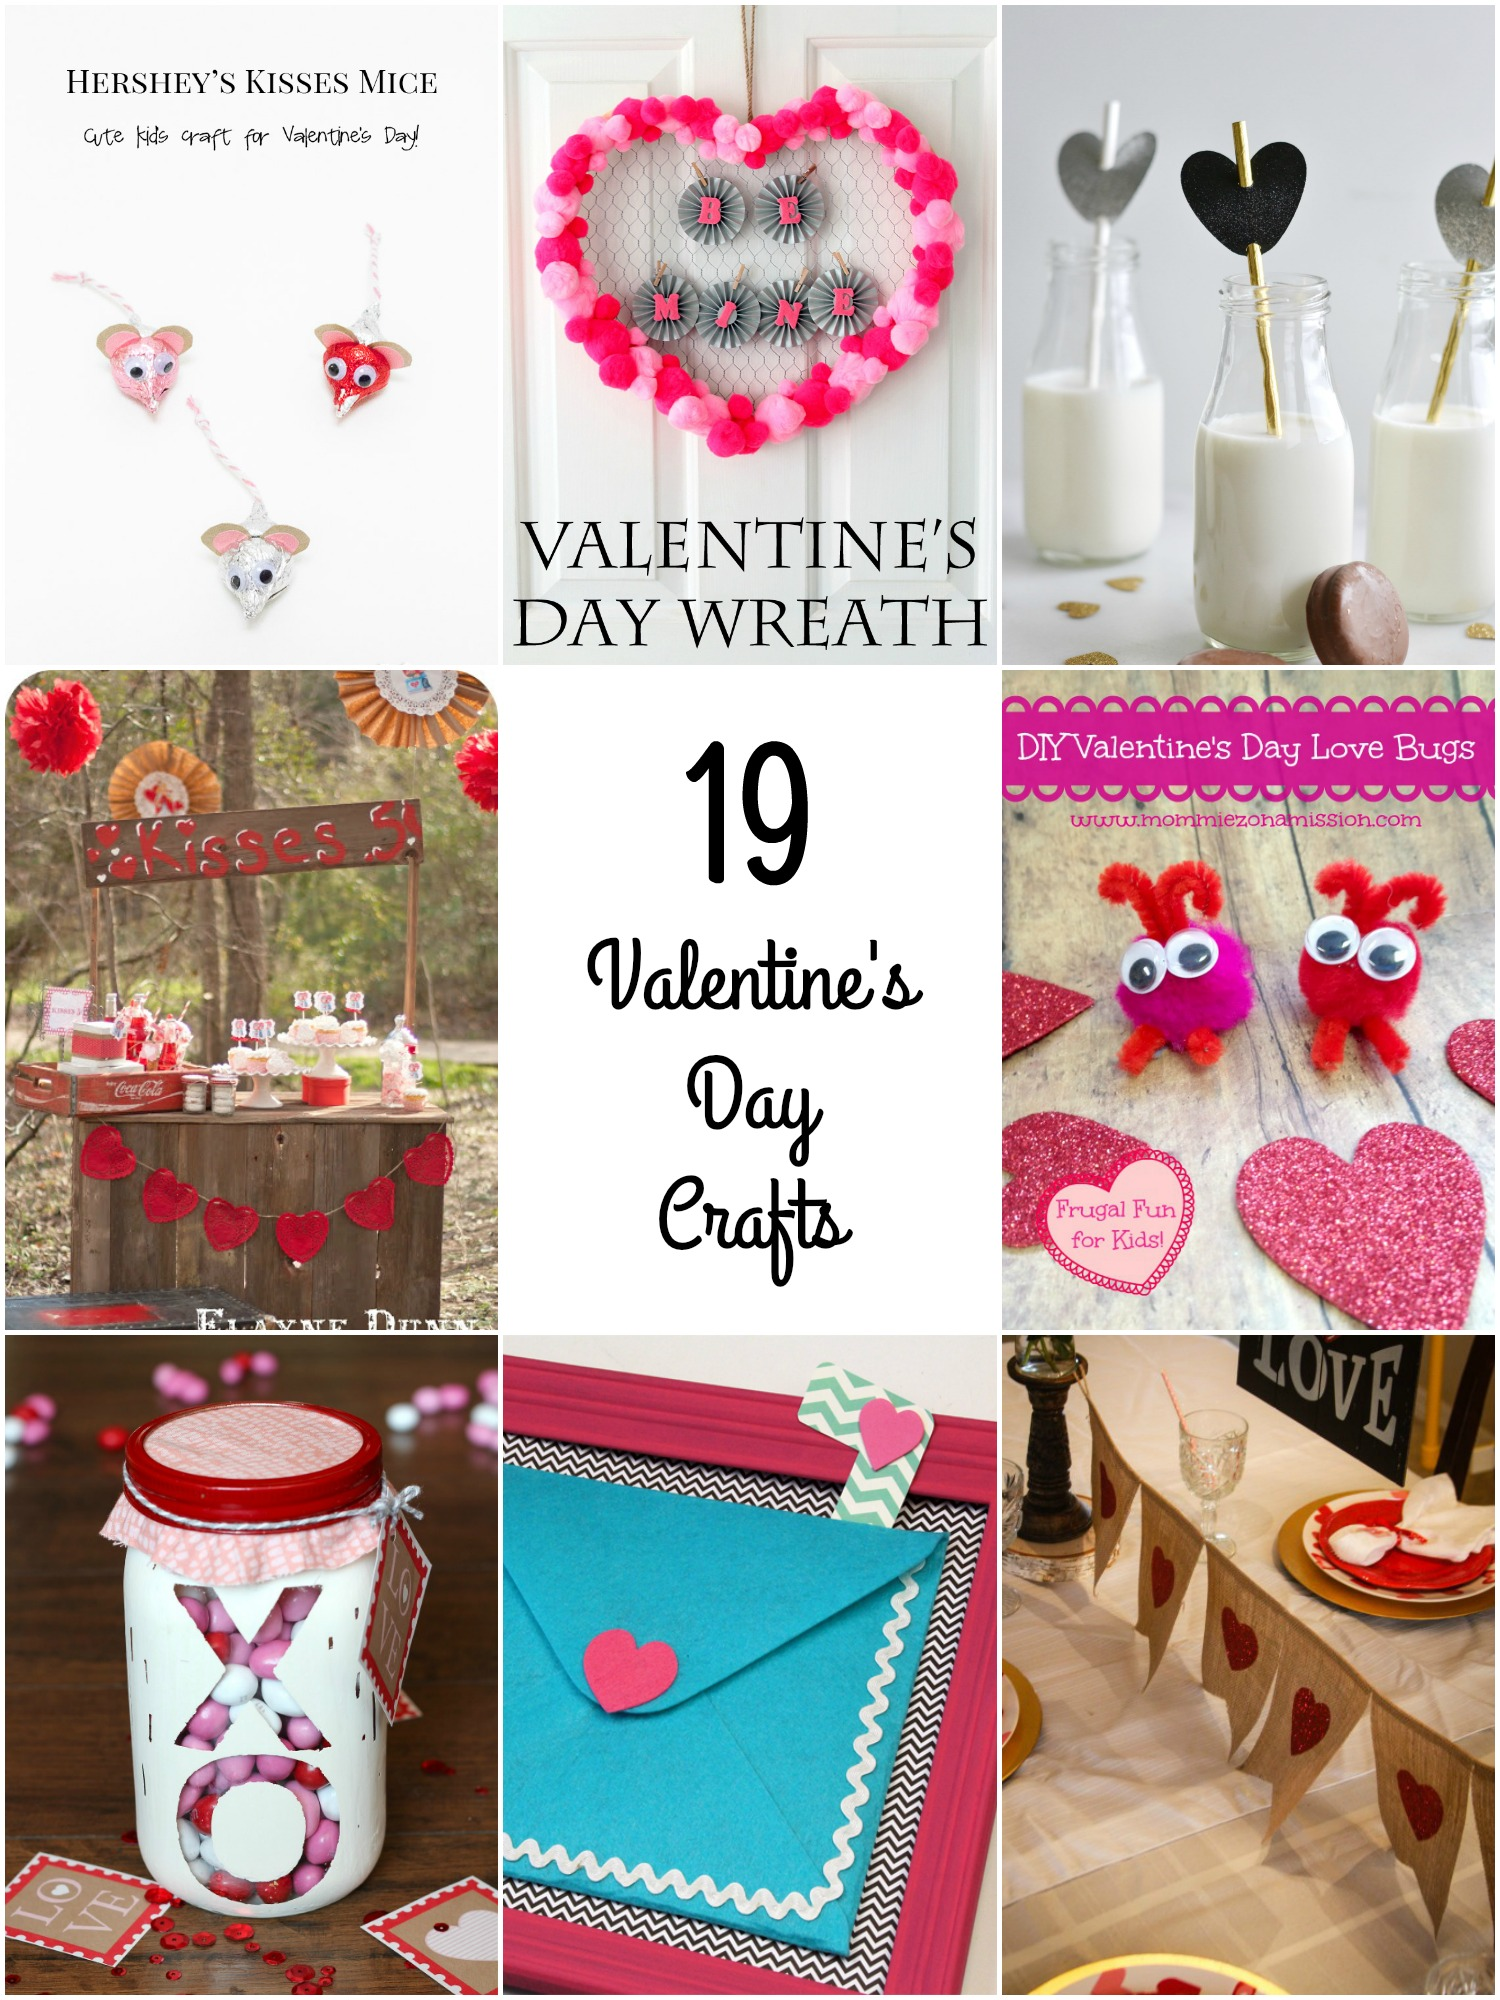 So Creative! - 19 Fun Valentine\'s Day Crafts